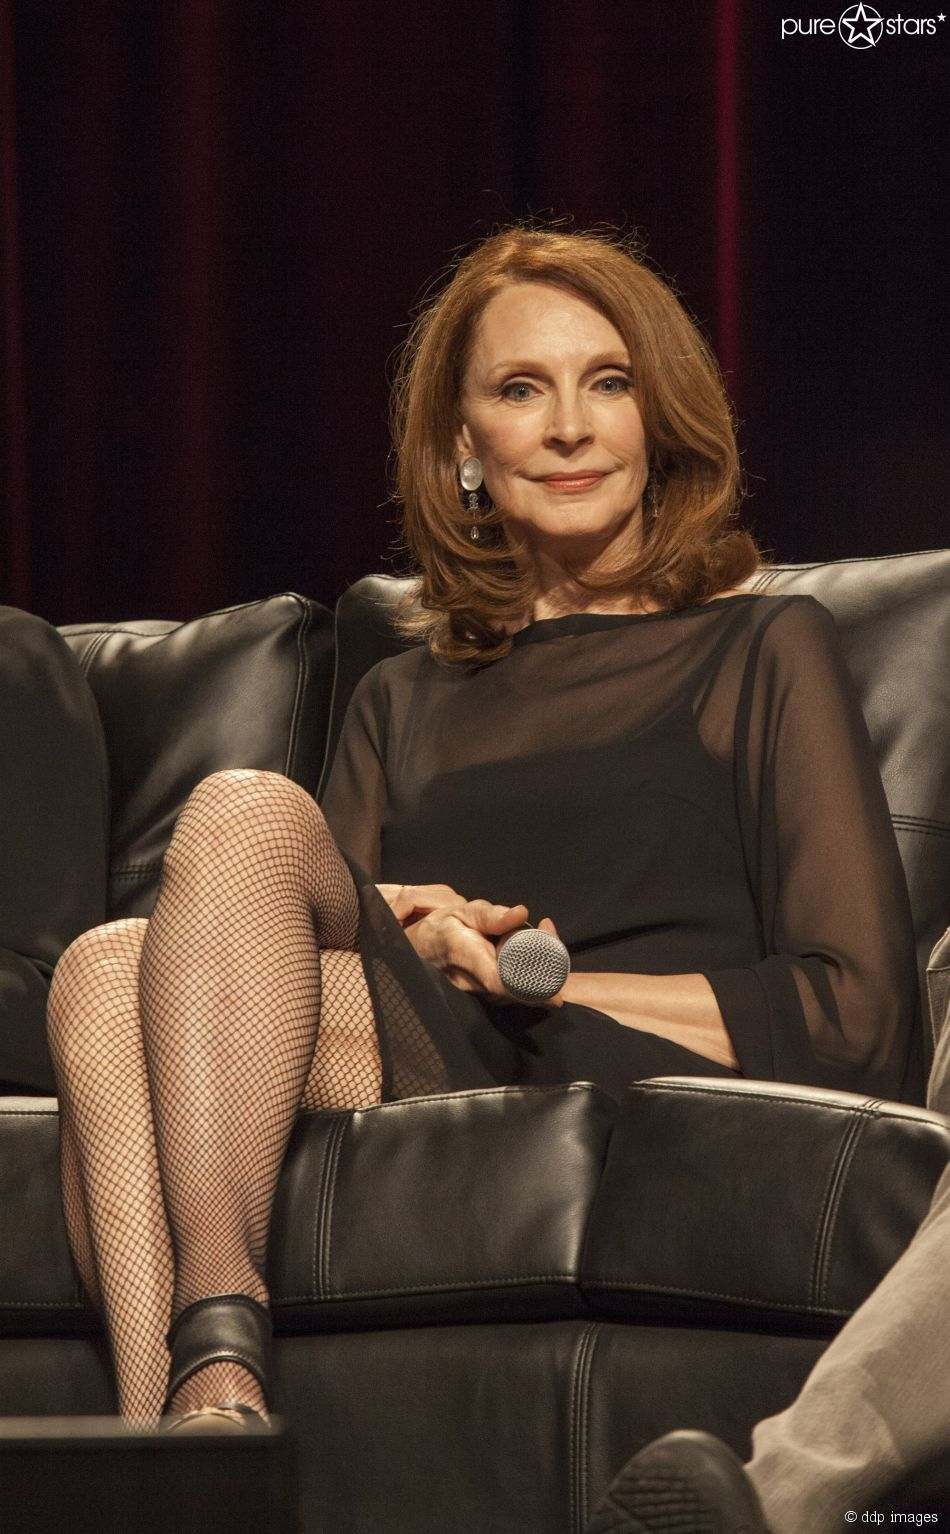 Gates McFadden nude (52 photo), Sexy, Fappening, Twitter, swimsuit 2006